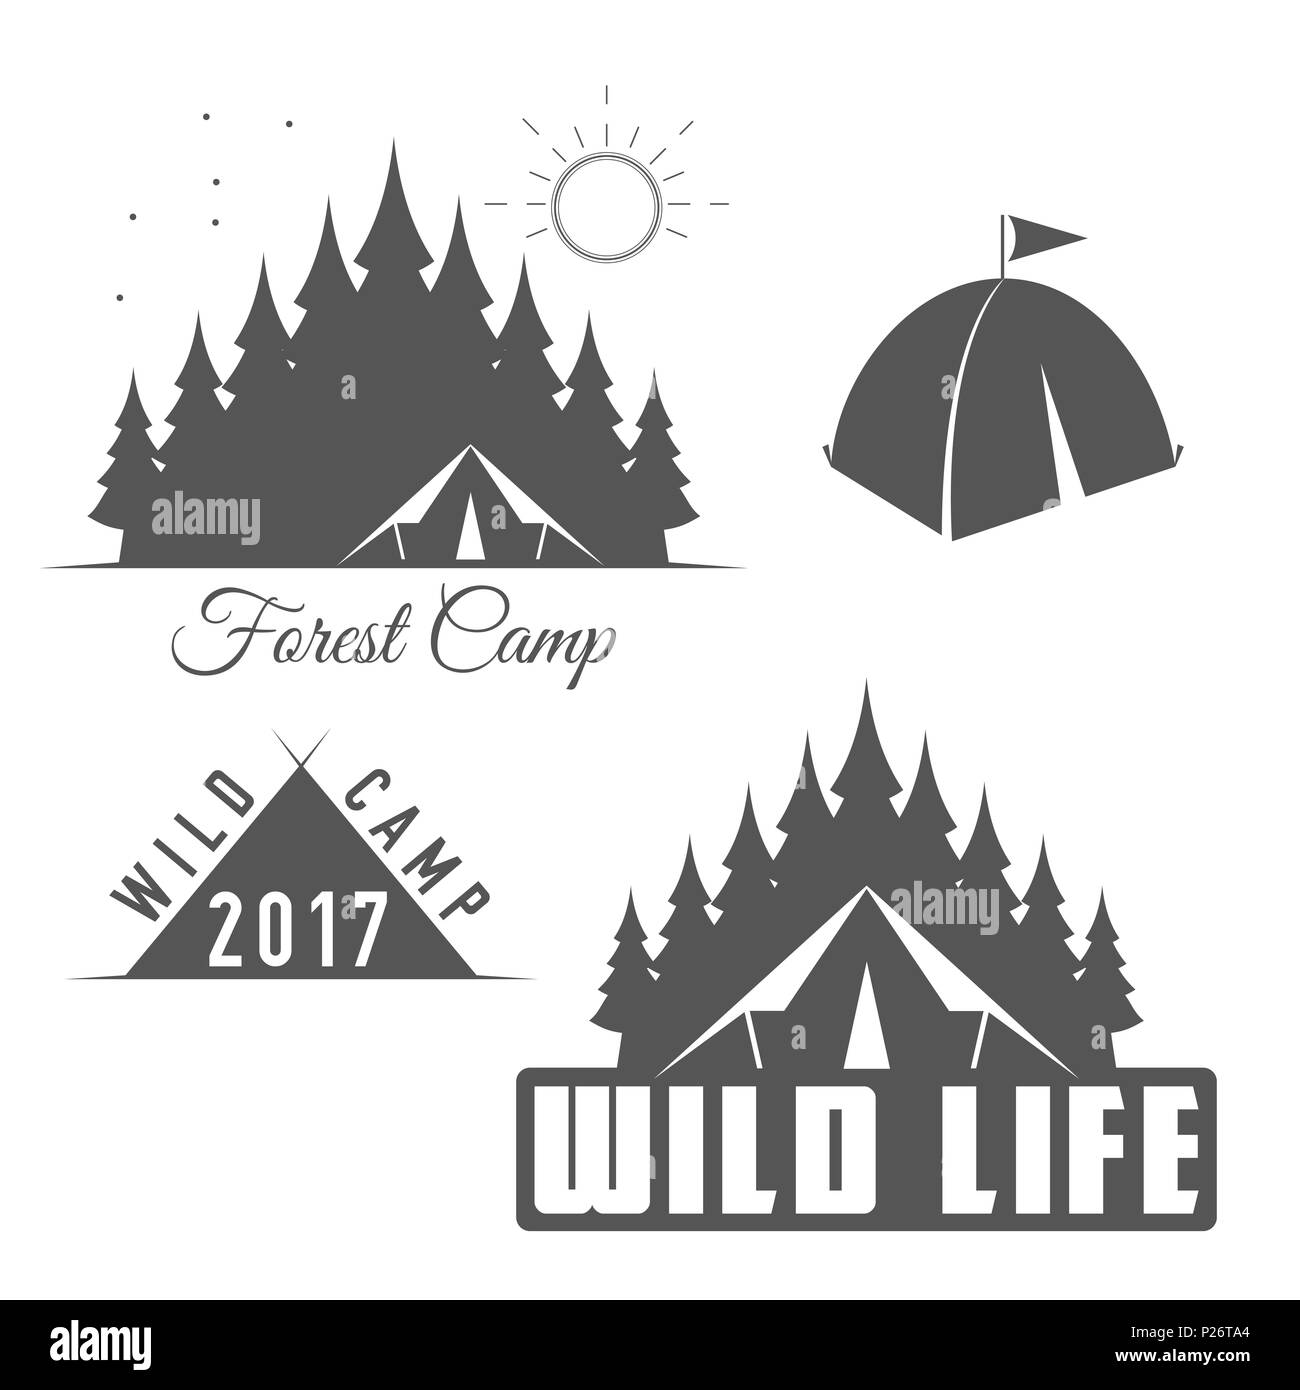 Wild Life - Forest Camp - Scout Club Emblem in Black and White Style. - Stock Image